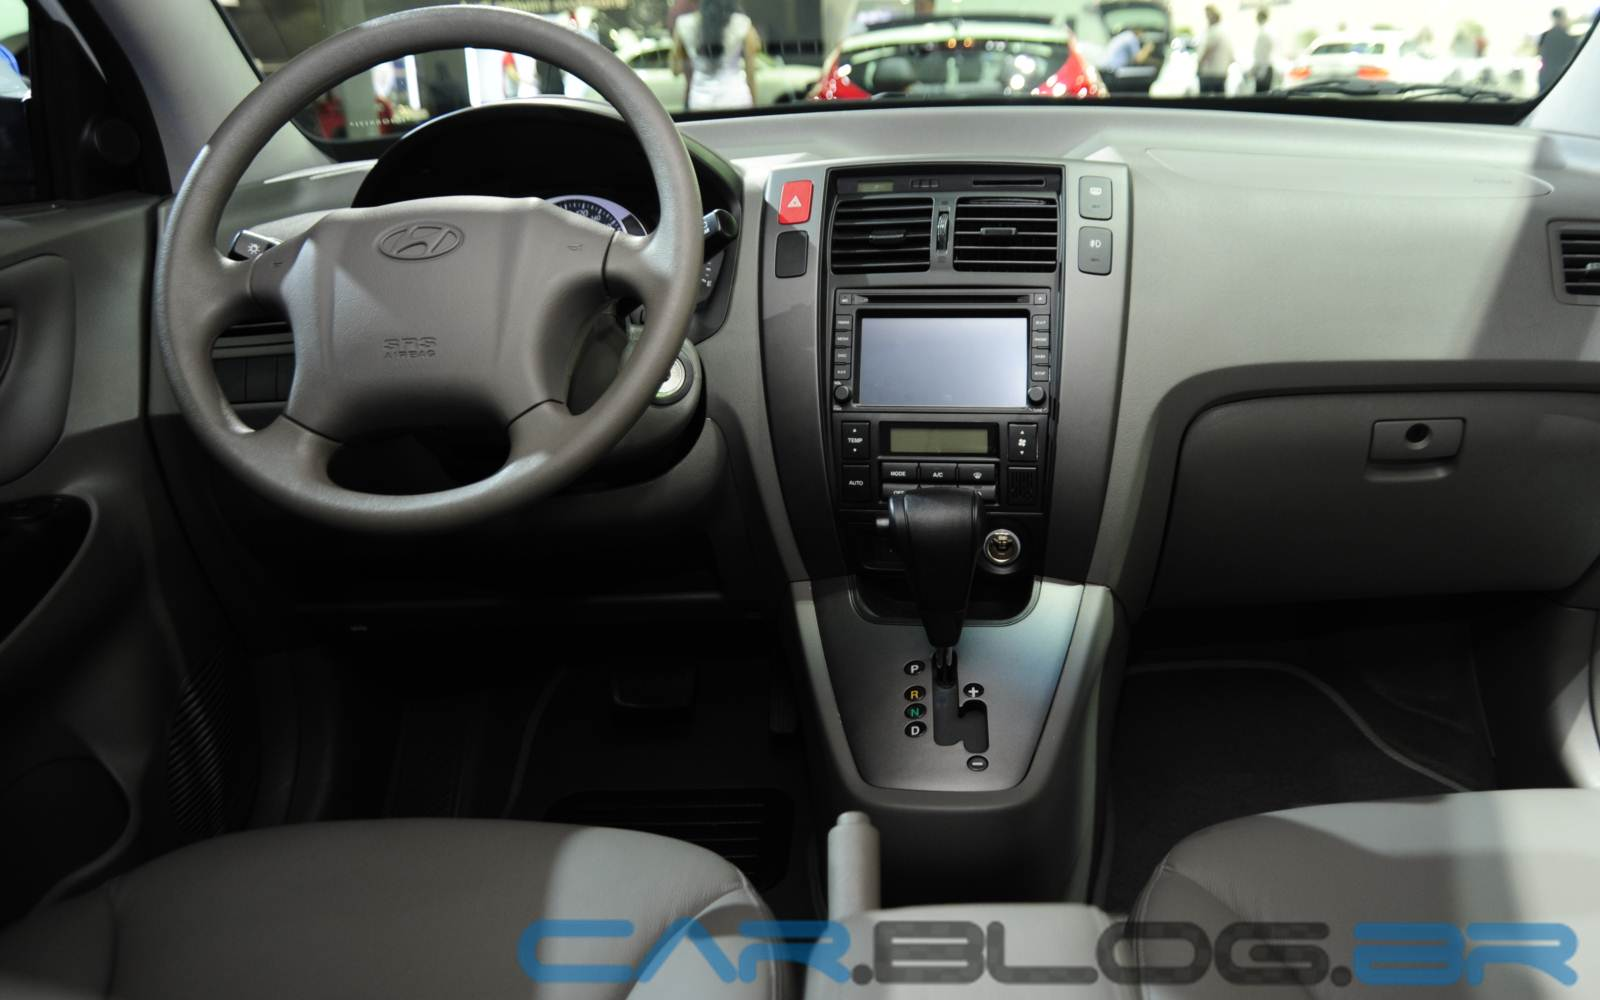 hyundai tucson 2013 flex autom tico pre o consumo fotos e ficha t cnica car blog br. Black Bedroom Furniture Sets. Home Design Ideas